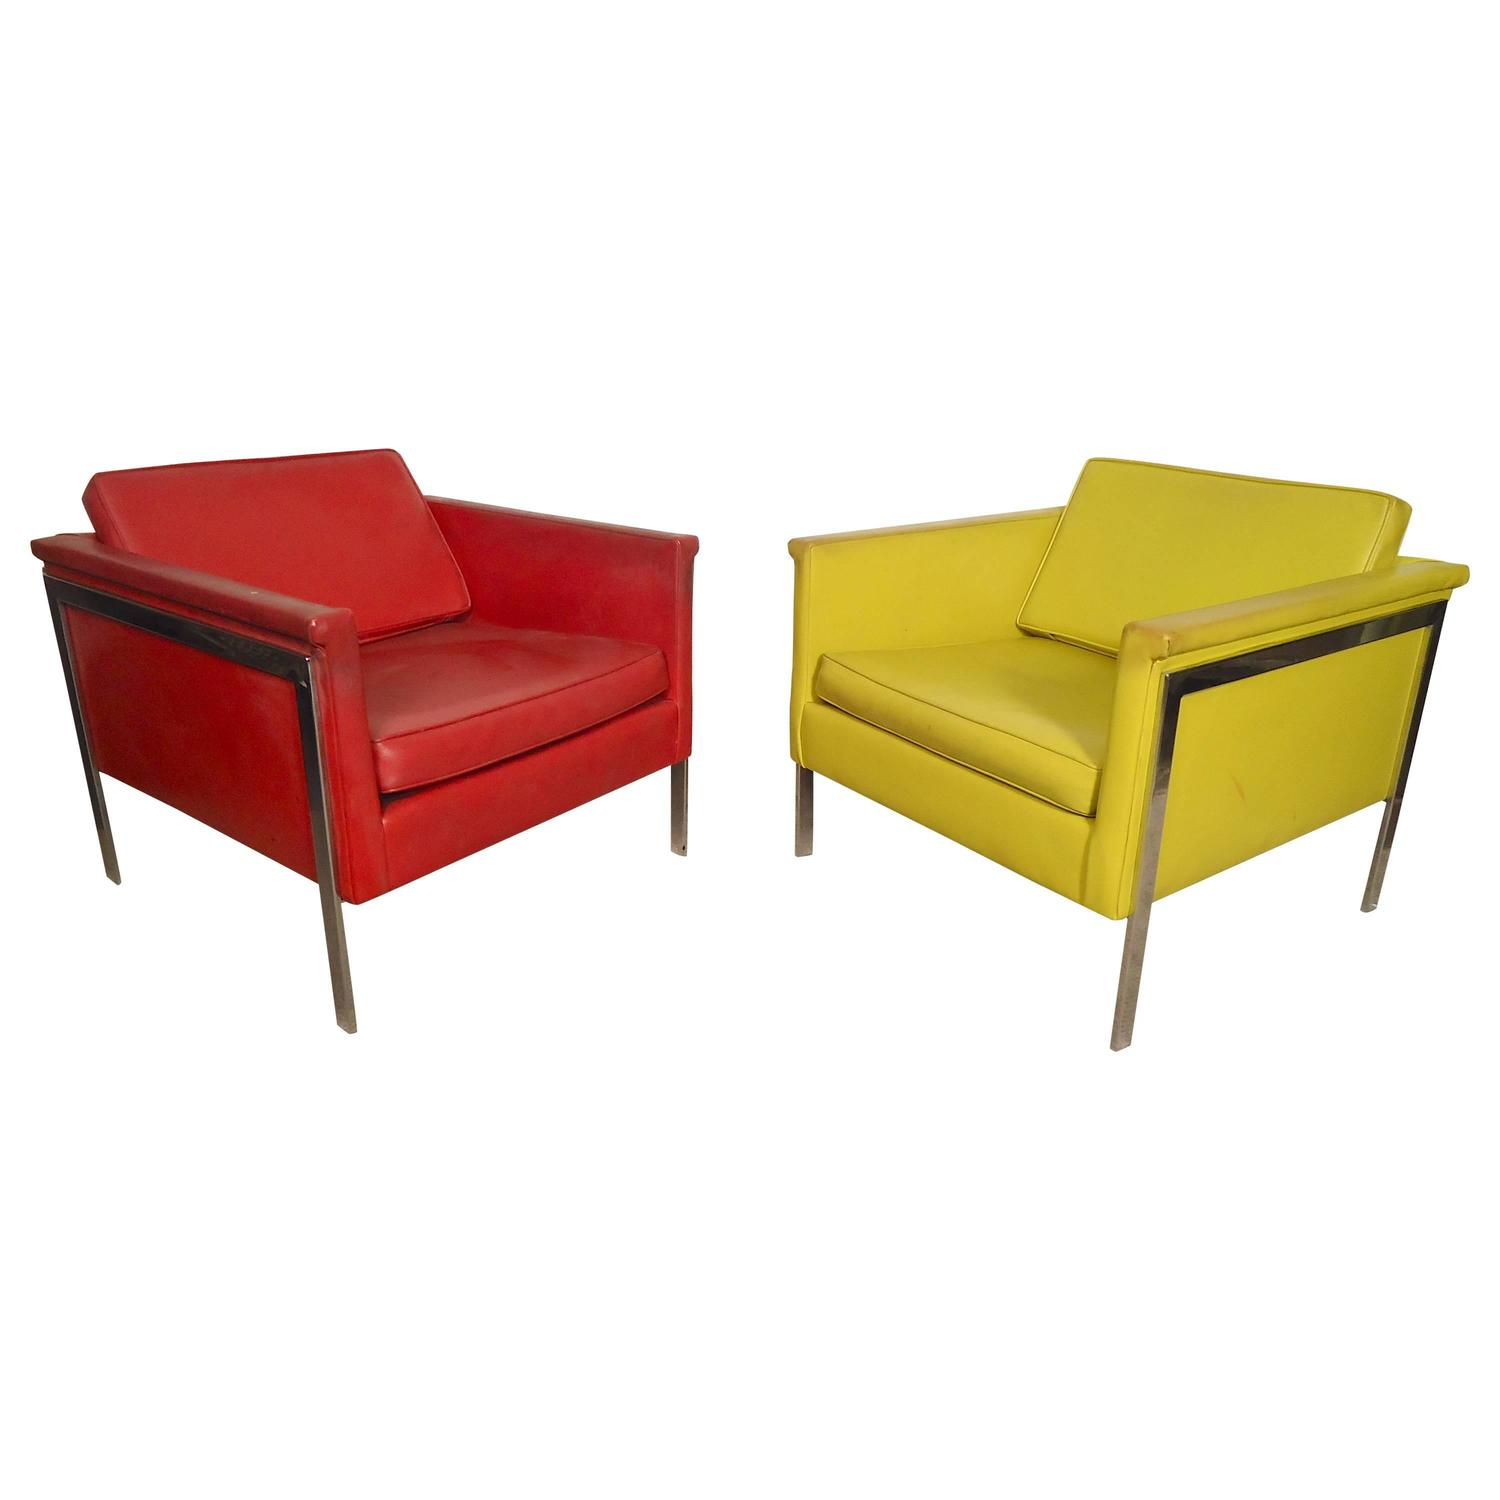 Oversized Midcentury Lounge Chairs For Sale at 1stdibs